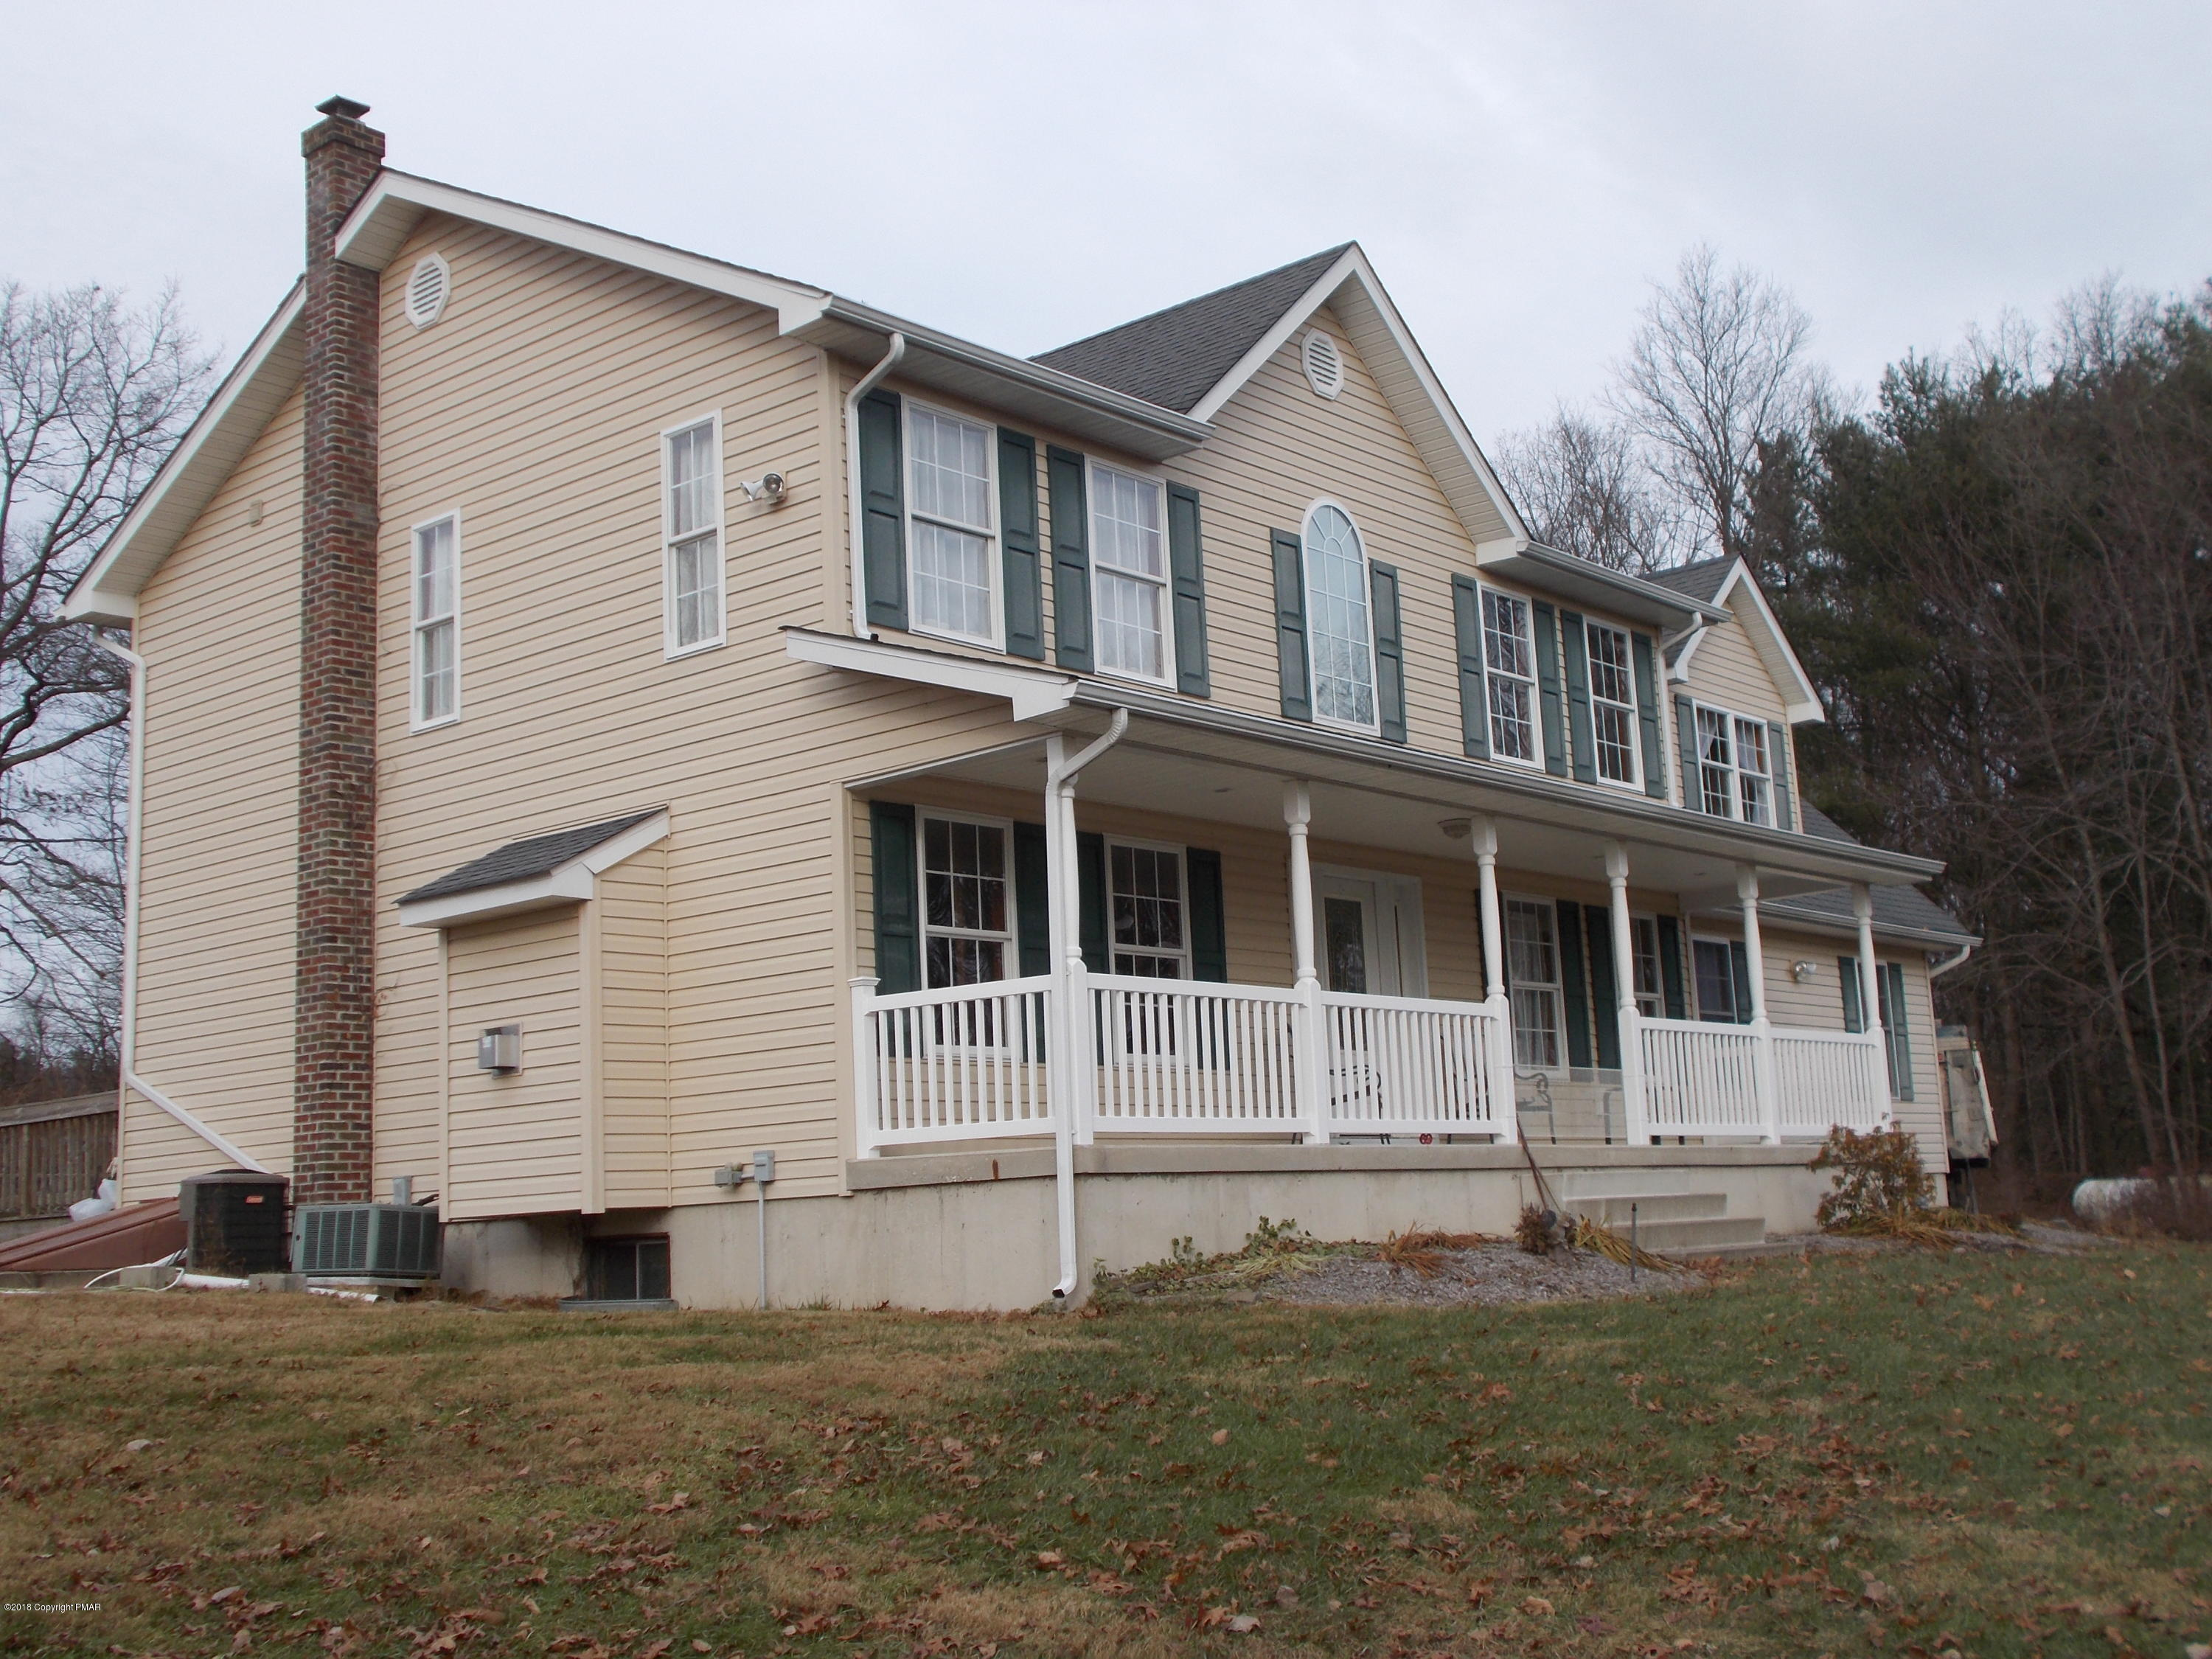 603 Bartonsville Woods Rd, Reeders, PA 18352